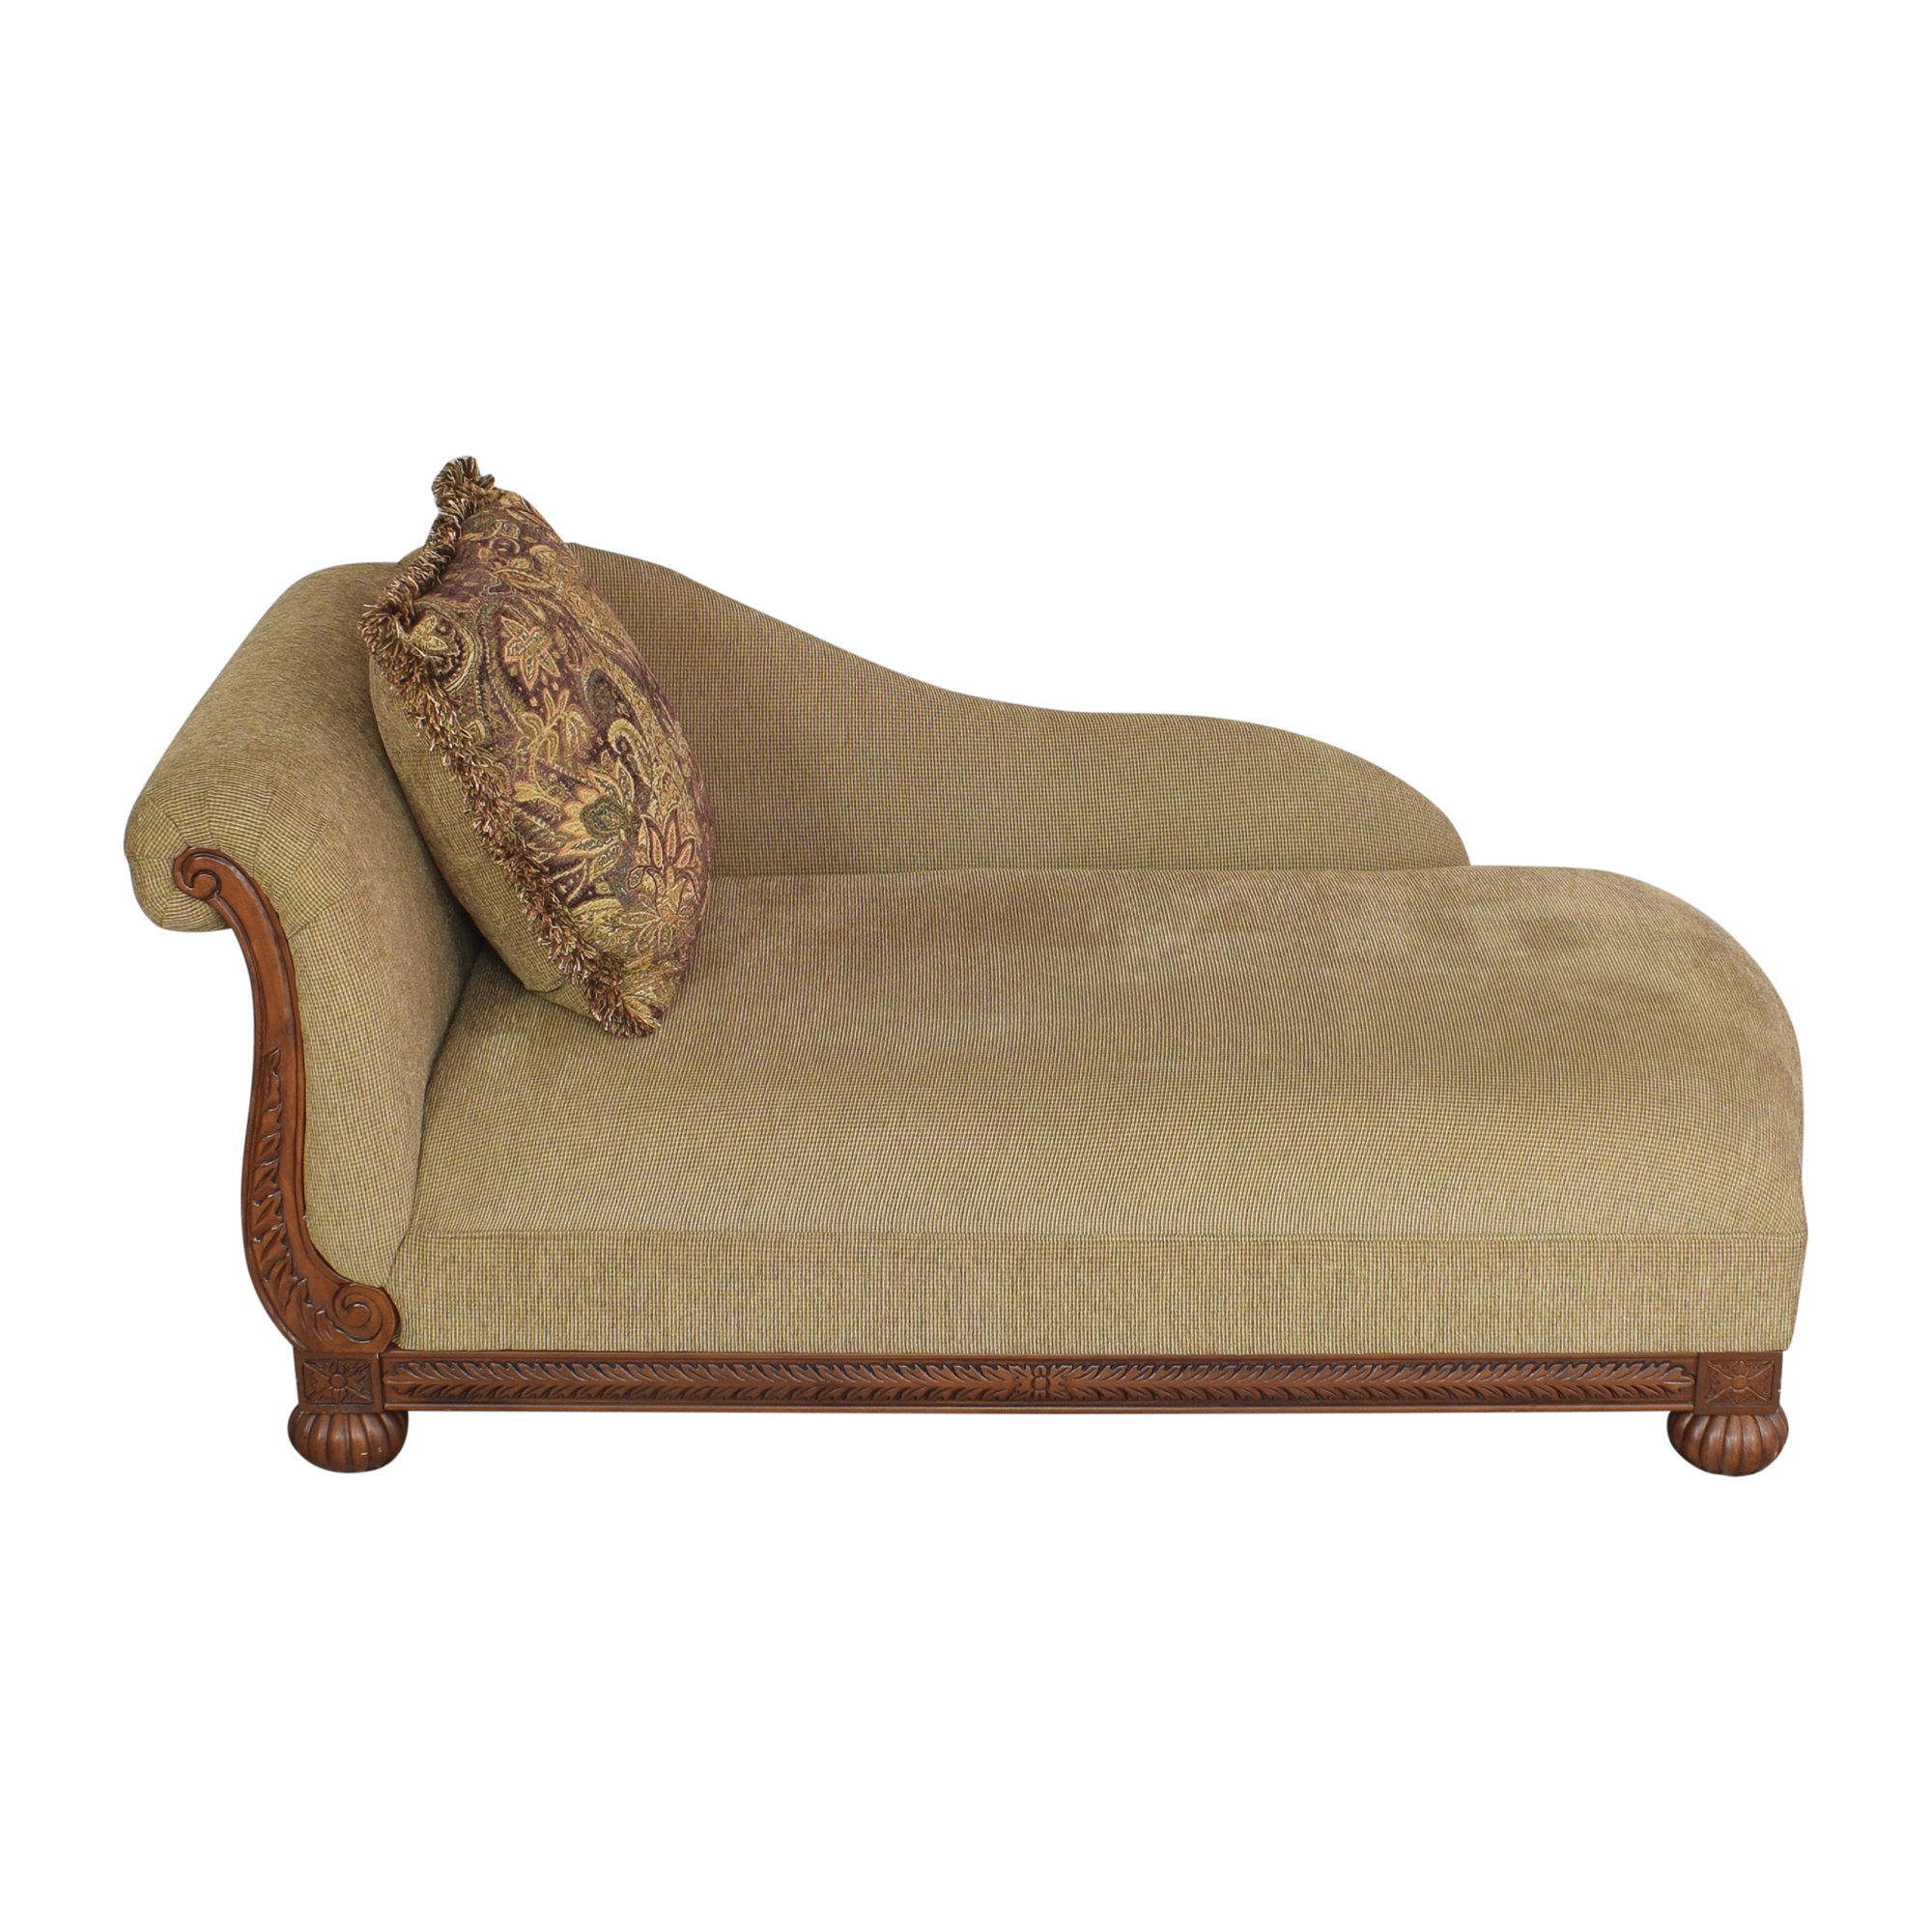 Raymour & Flanigan Raymour & Flanigan Rolled Back Chaise on sale